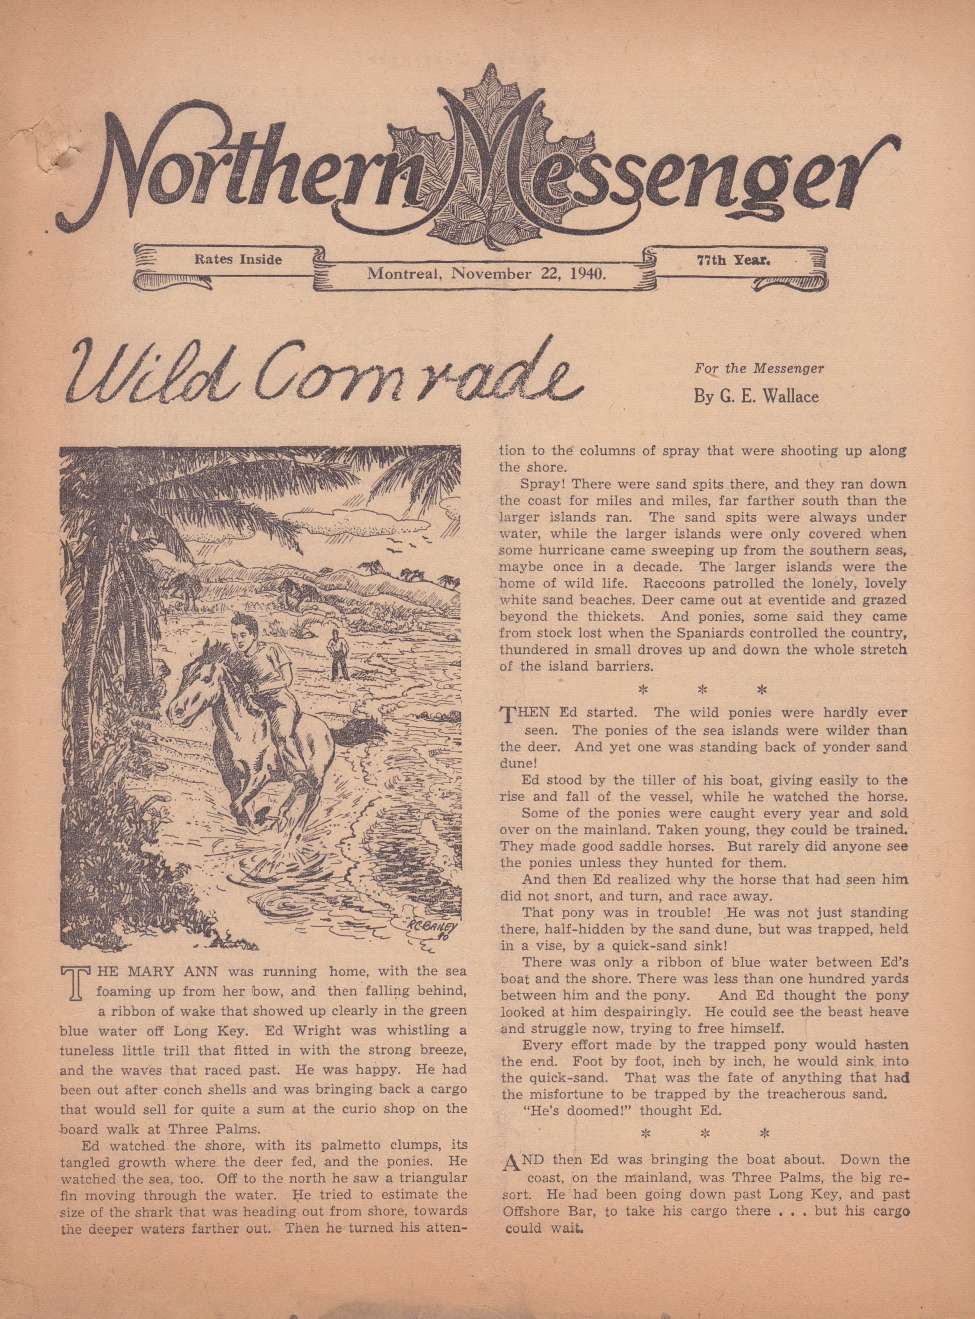 Comic Book Cover For Northern Messenger (1940-11-22)